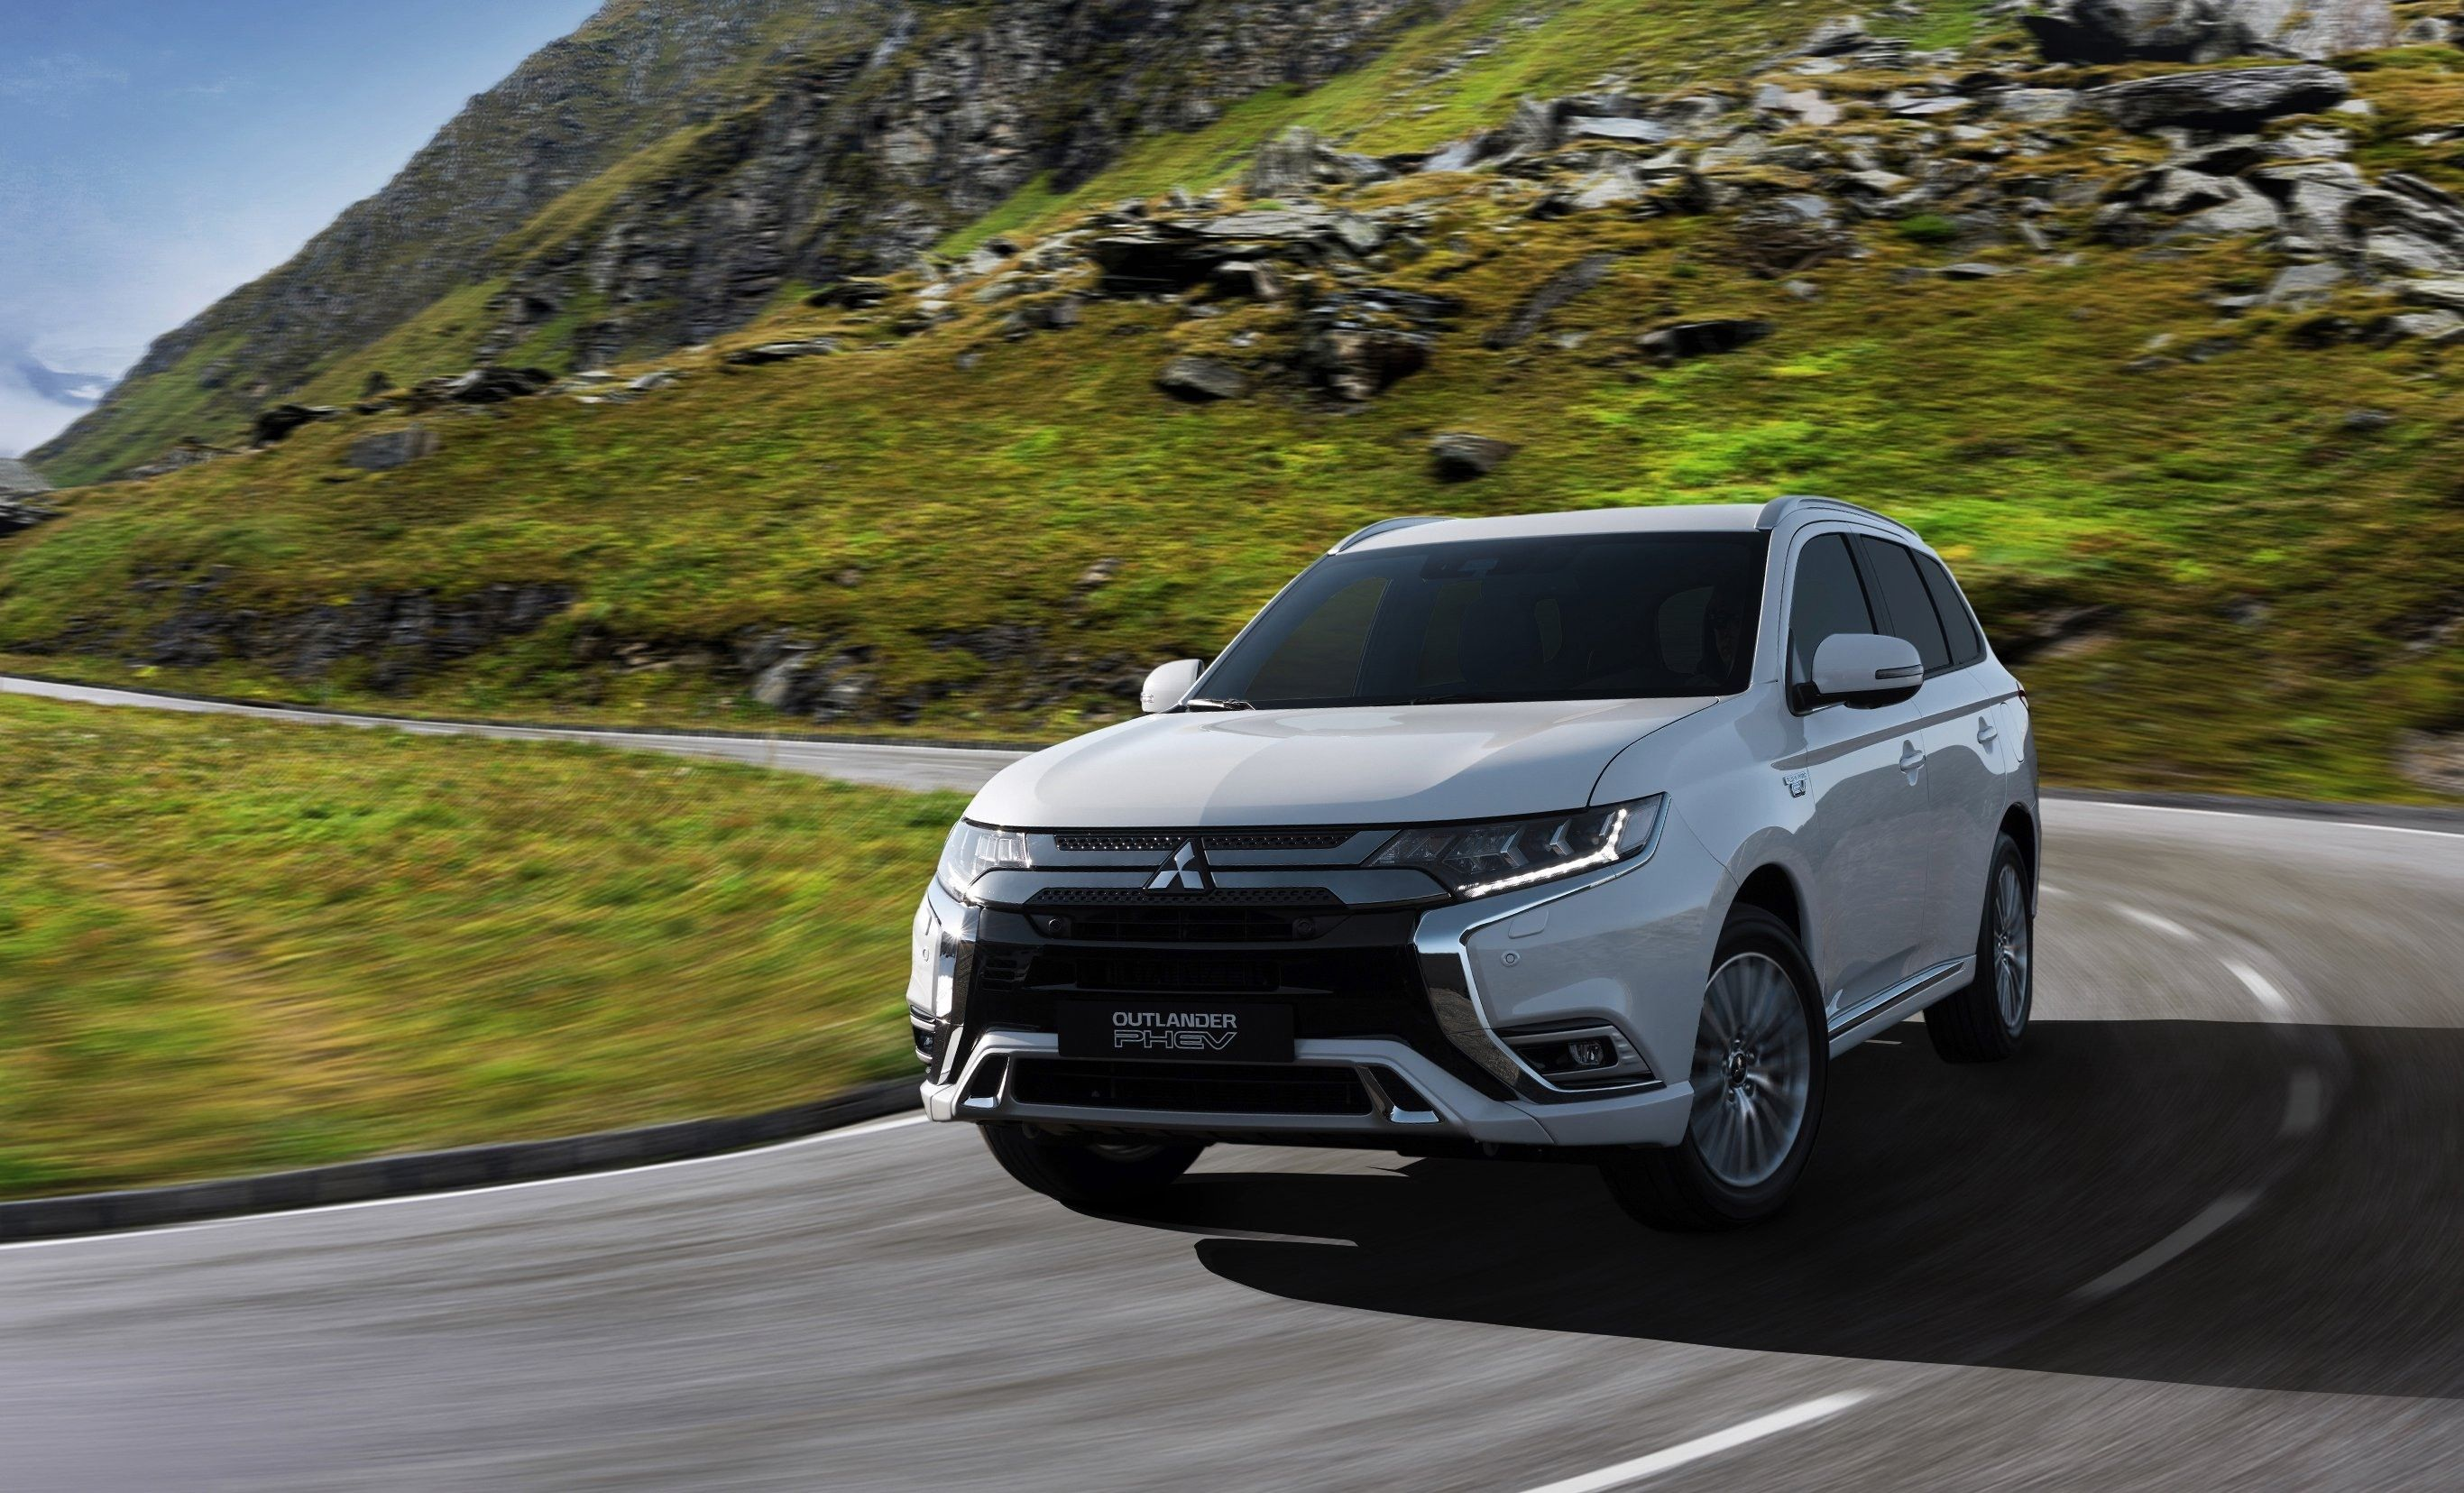 2019 Mitsubishi Outlander Mpg Review Specs And Release Date Redesign Price And Review Concep Outlander Phev Mitsubishi Outlander Mitsubishi Outlander Sport